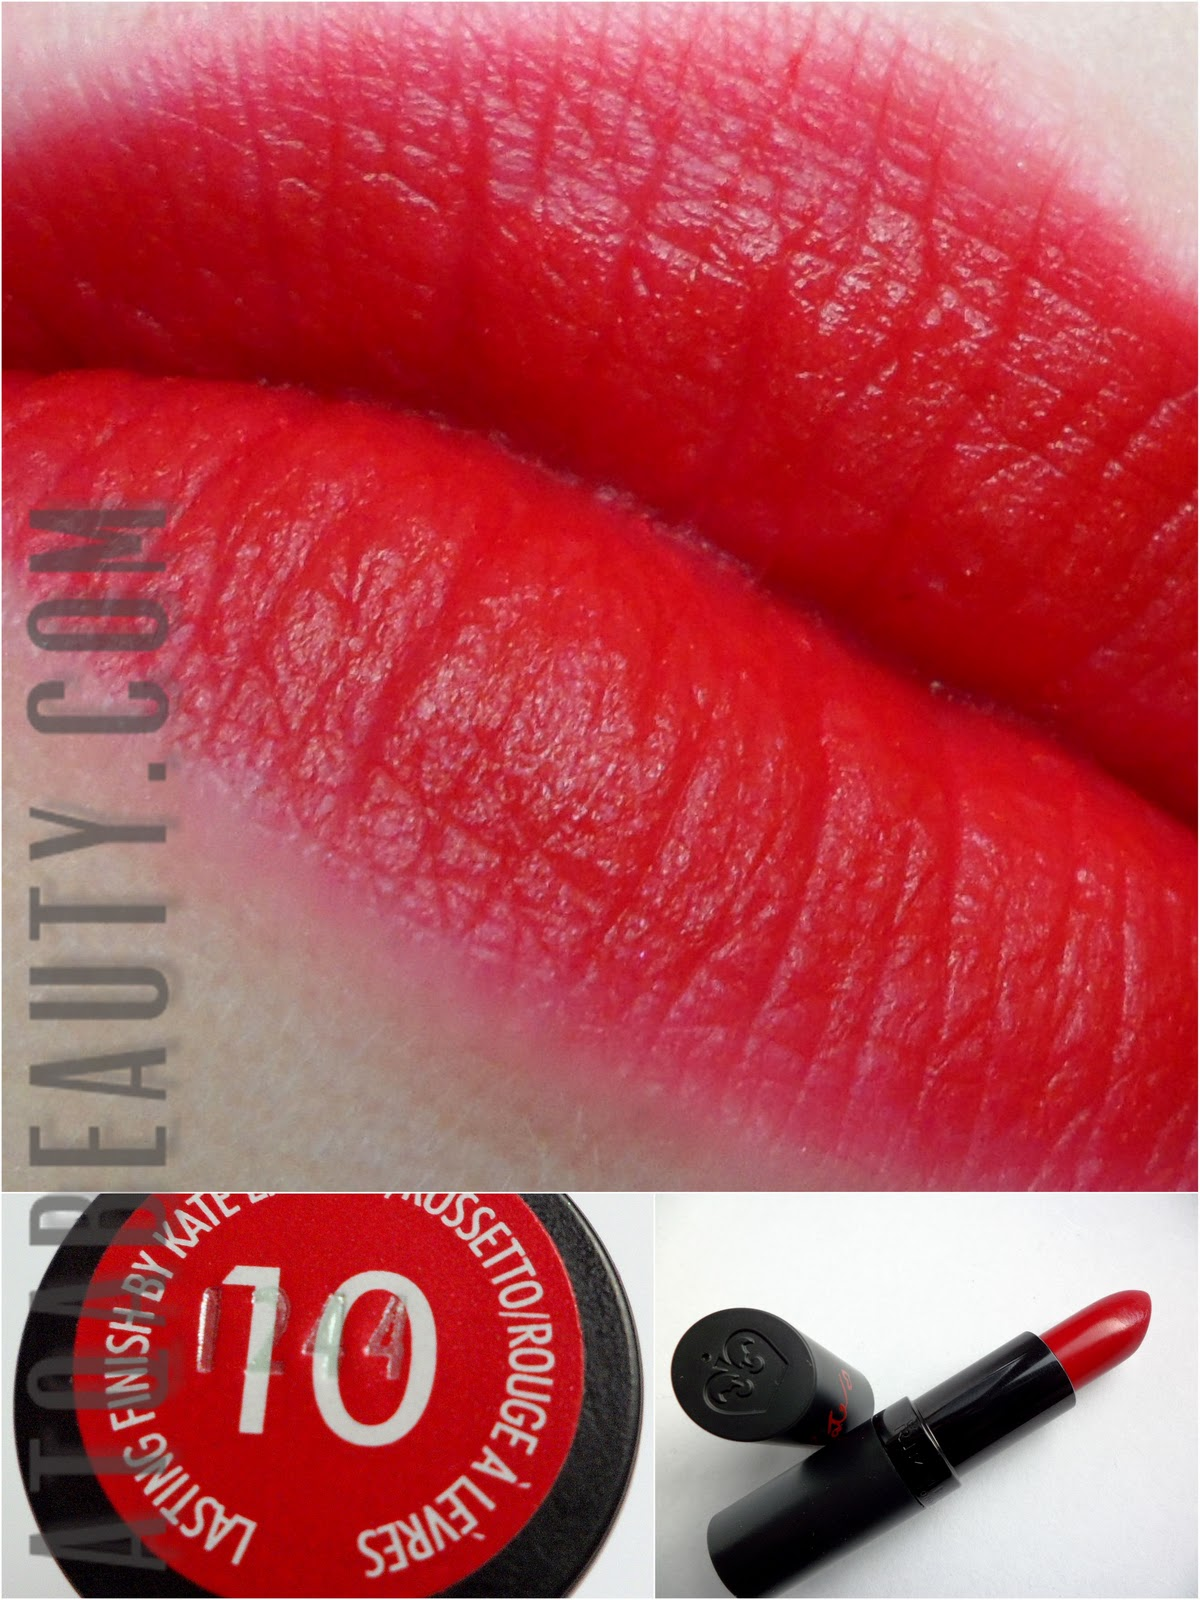 Rimmel, Lasting Finish by Kate Moss, 10